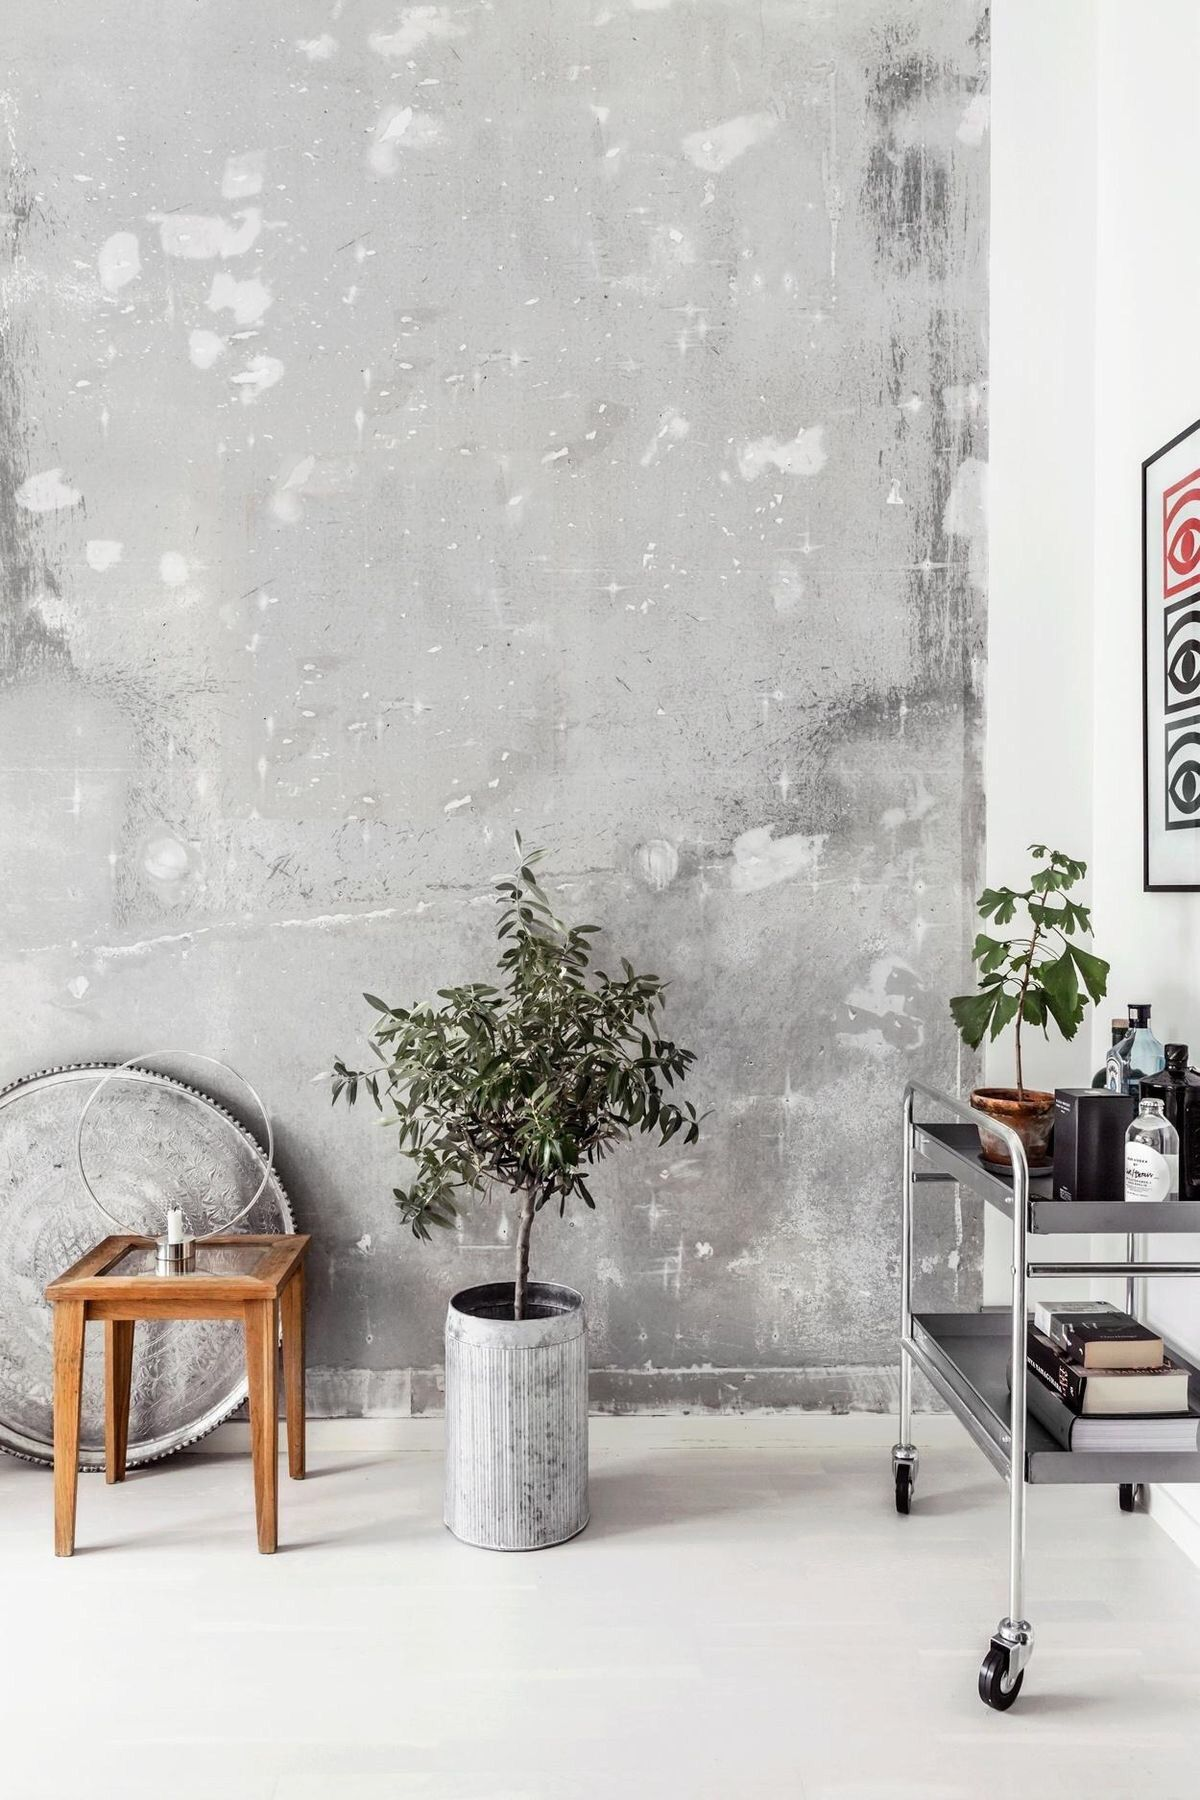 Wabi Sabi Interior Decor   The Latest Wall Finishes Trends   Raw Concrete  Walls